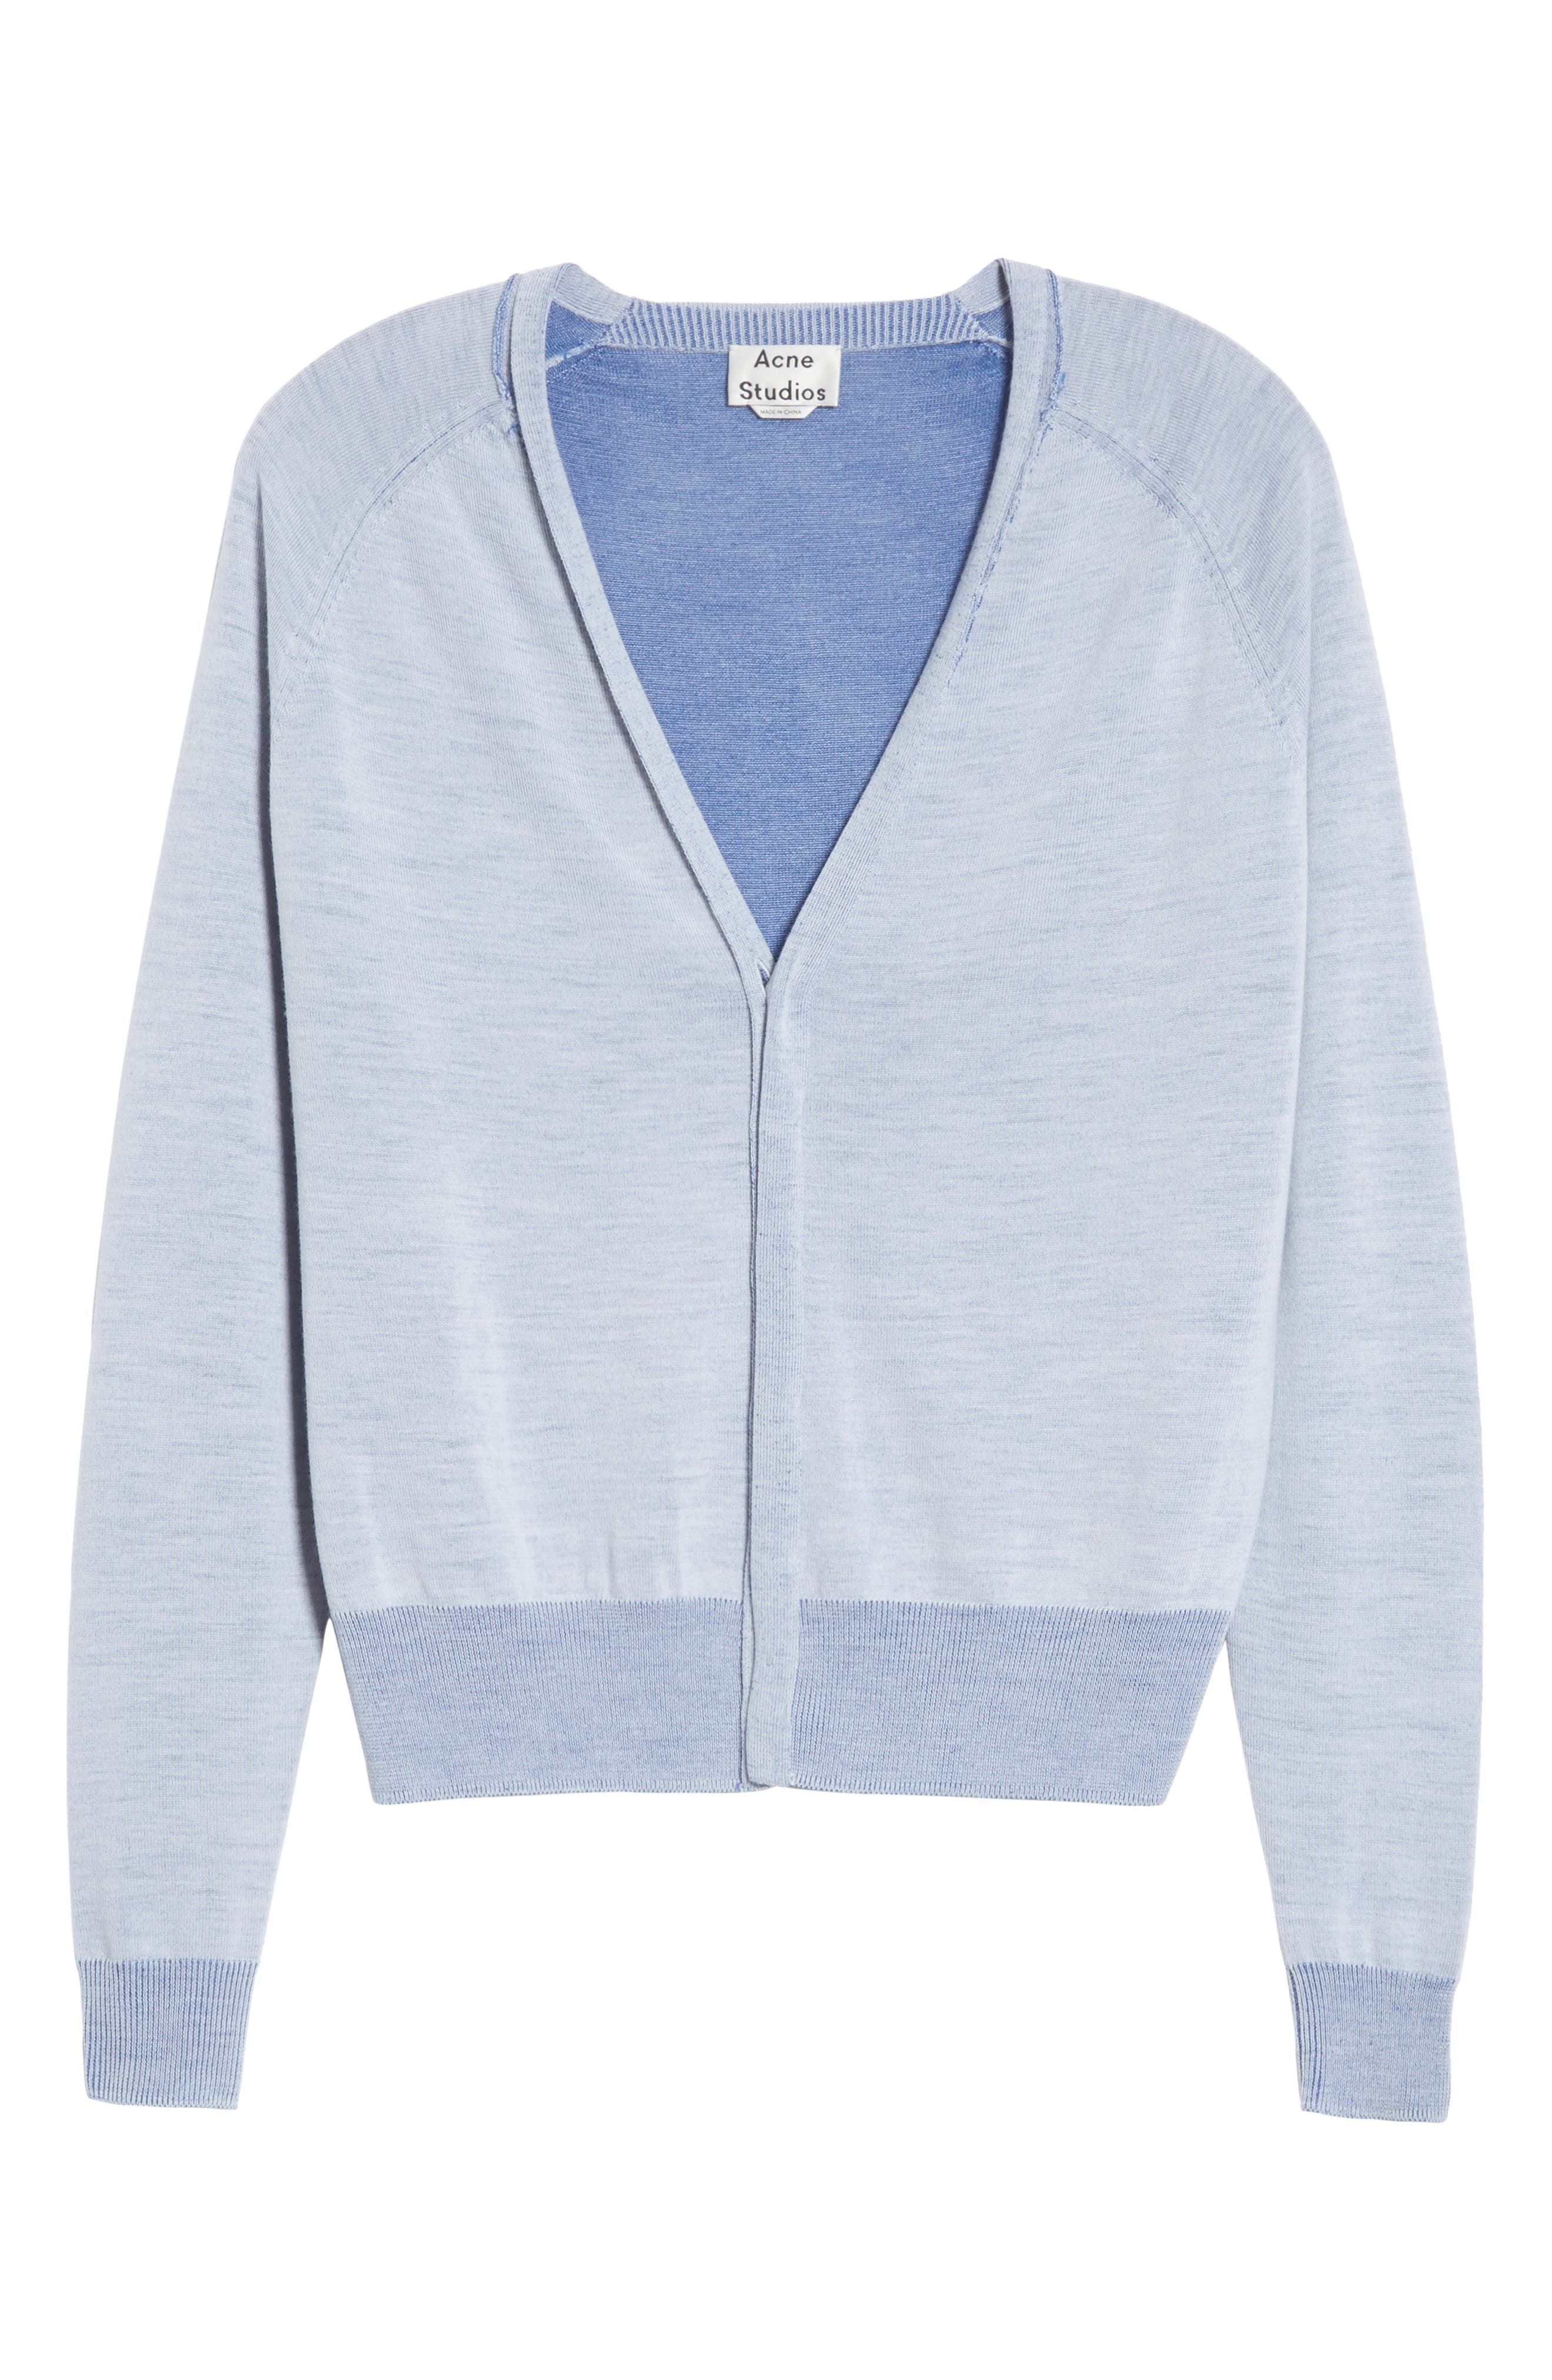 Florence V-Neck Cardigan,                             Alternate thumbnail 6, color,                             400